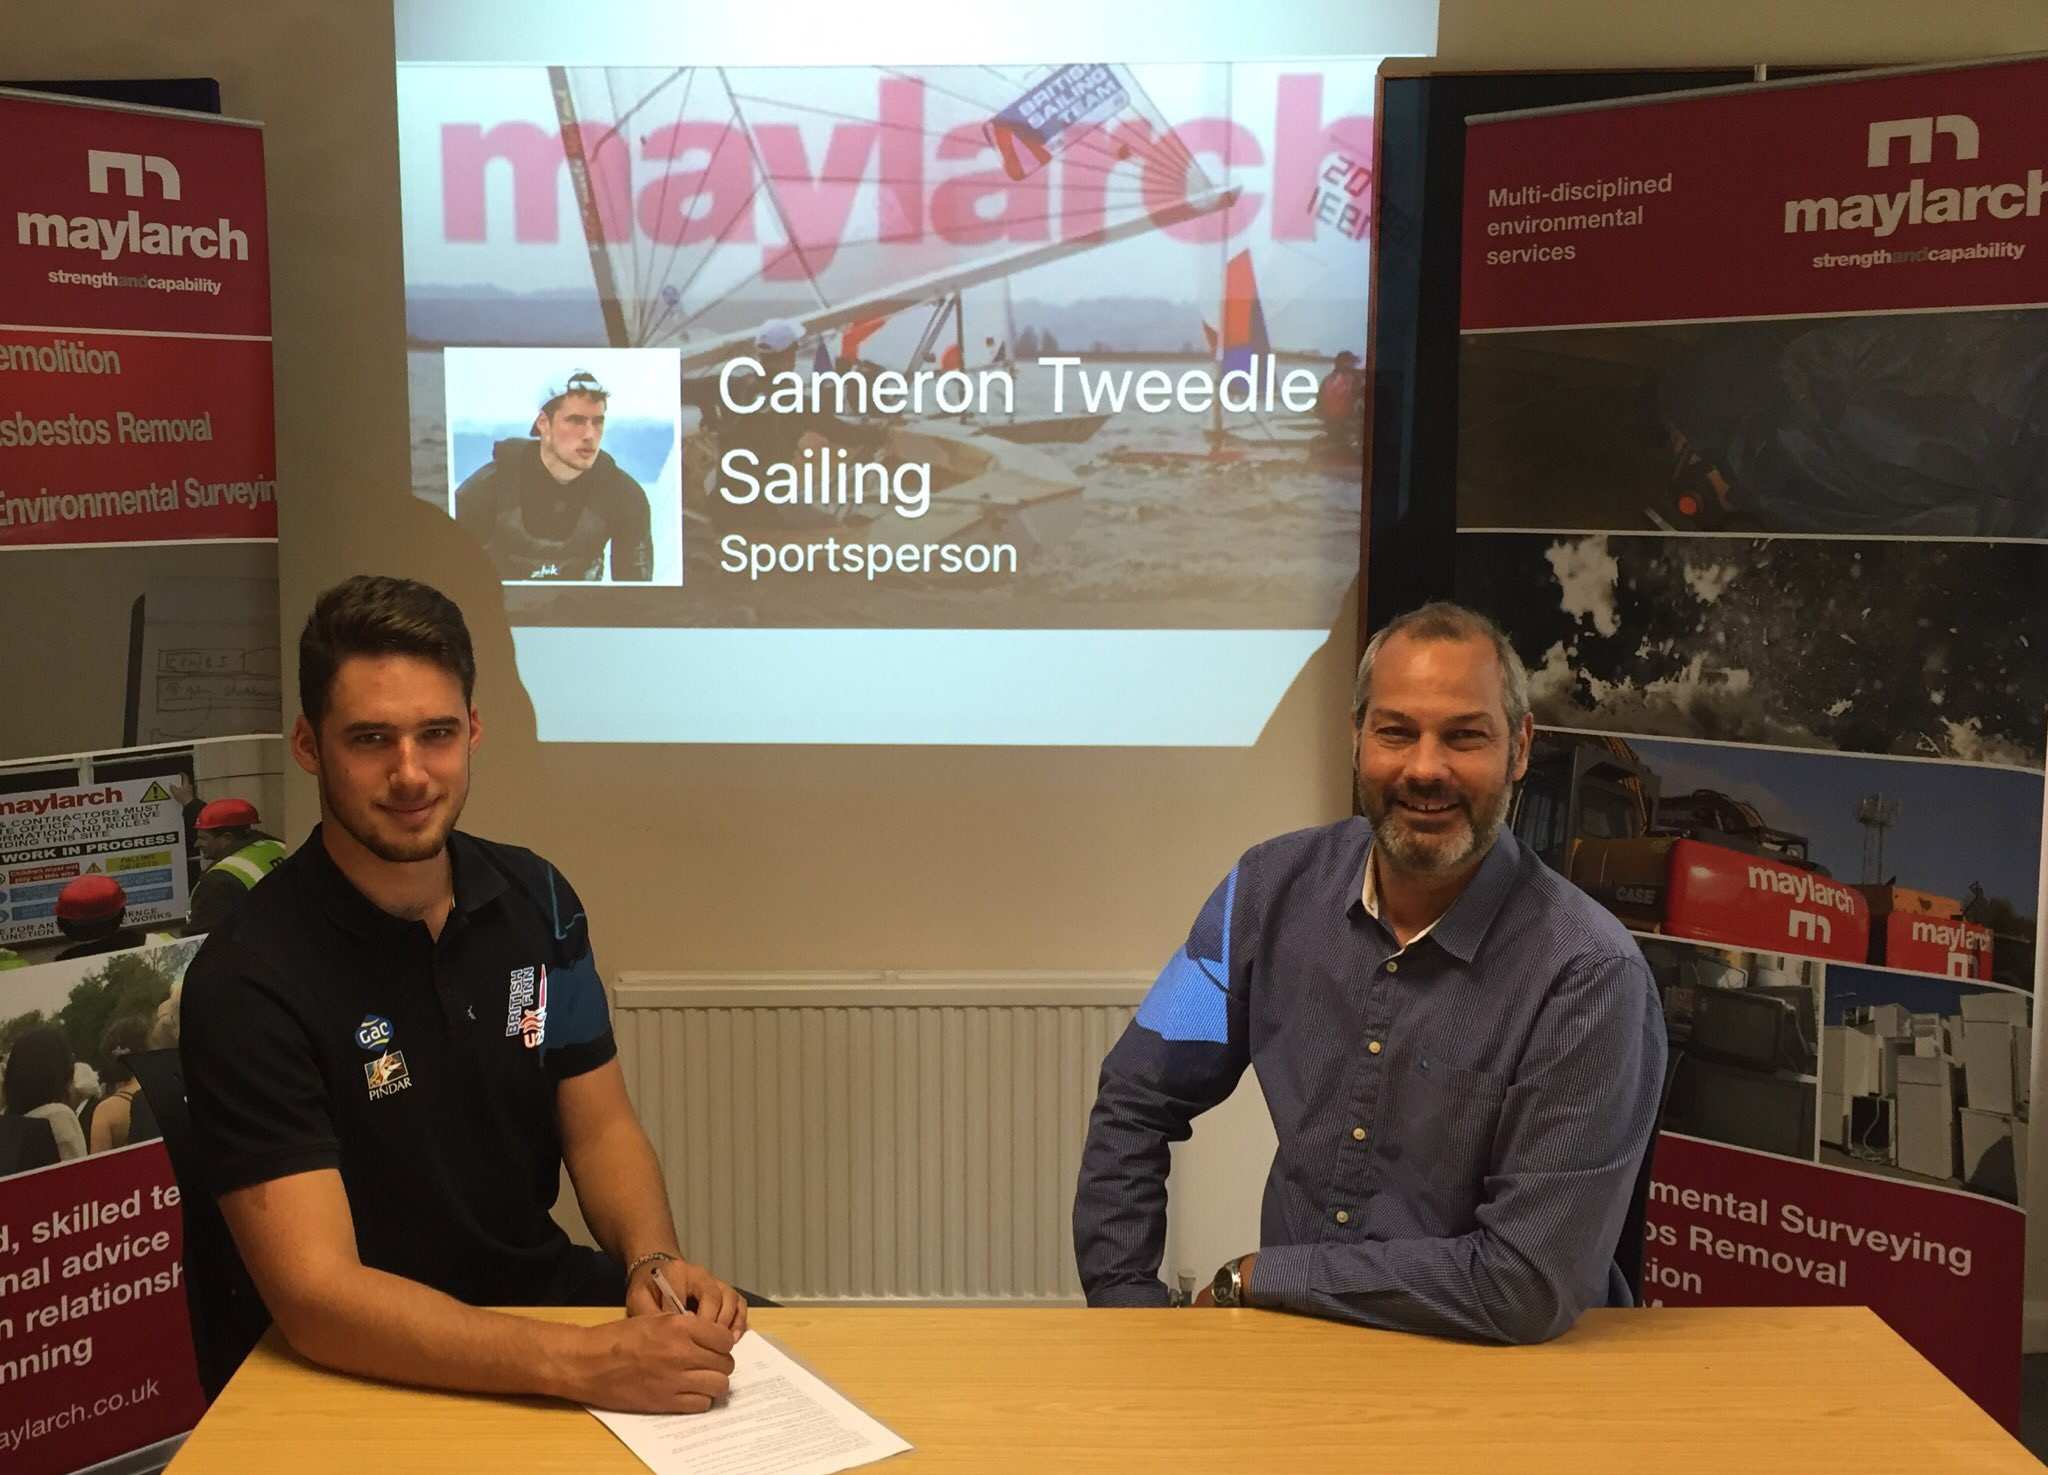 Maylarch commits to Cameron Tweedle sailing